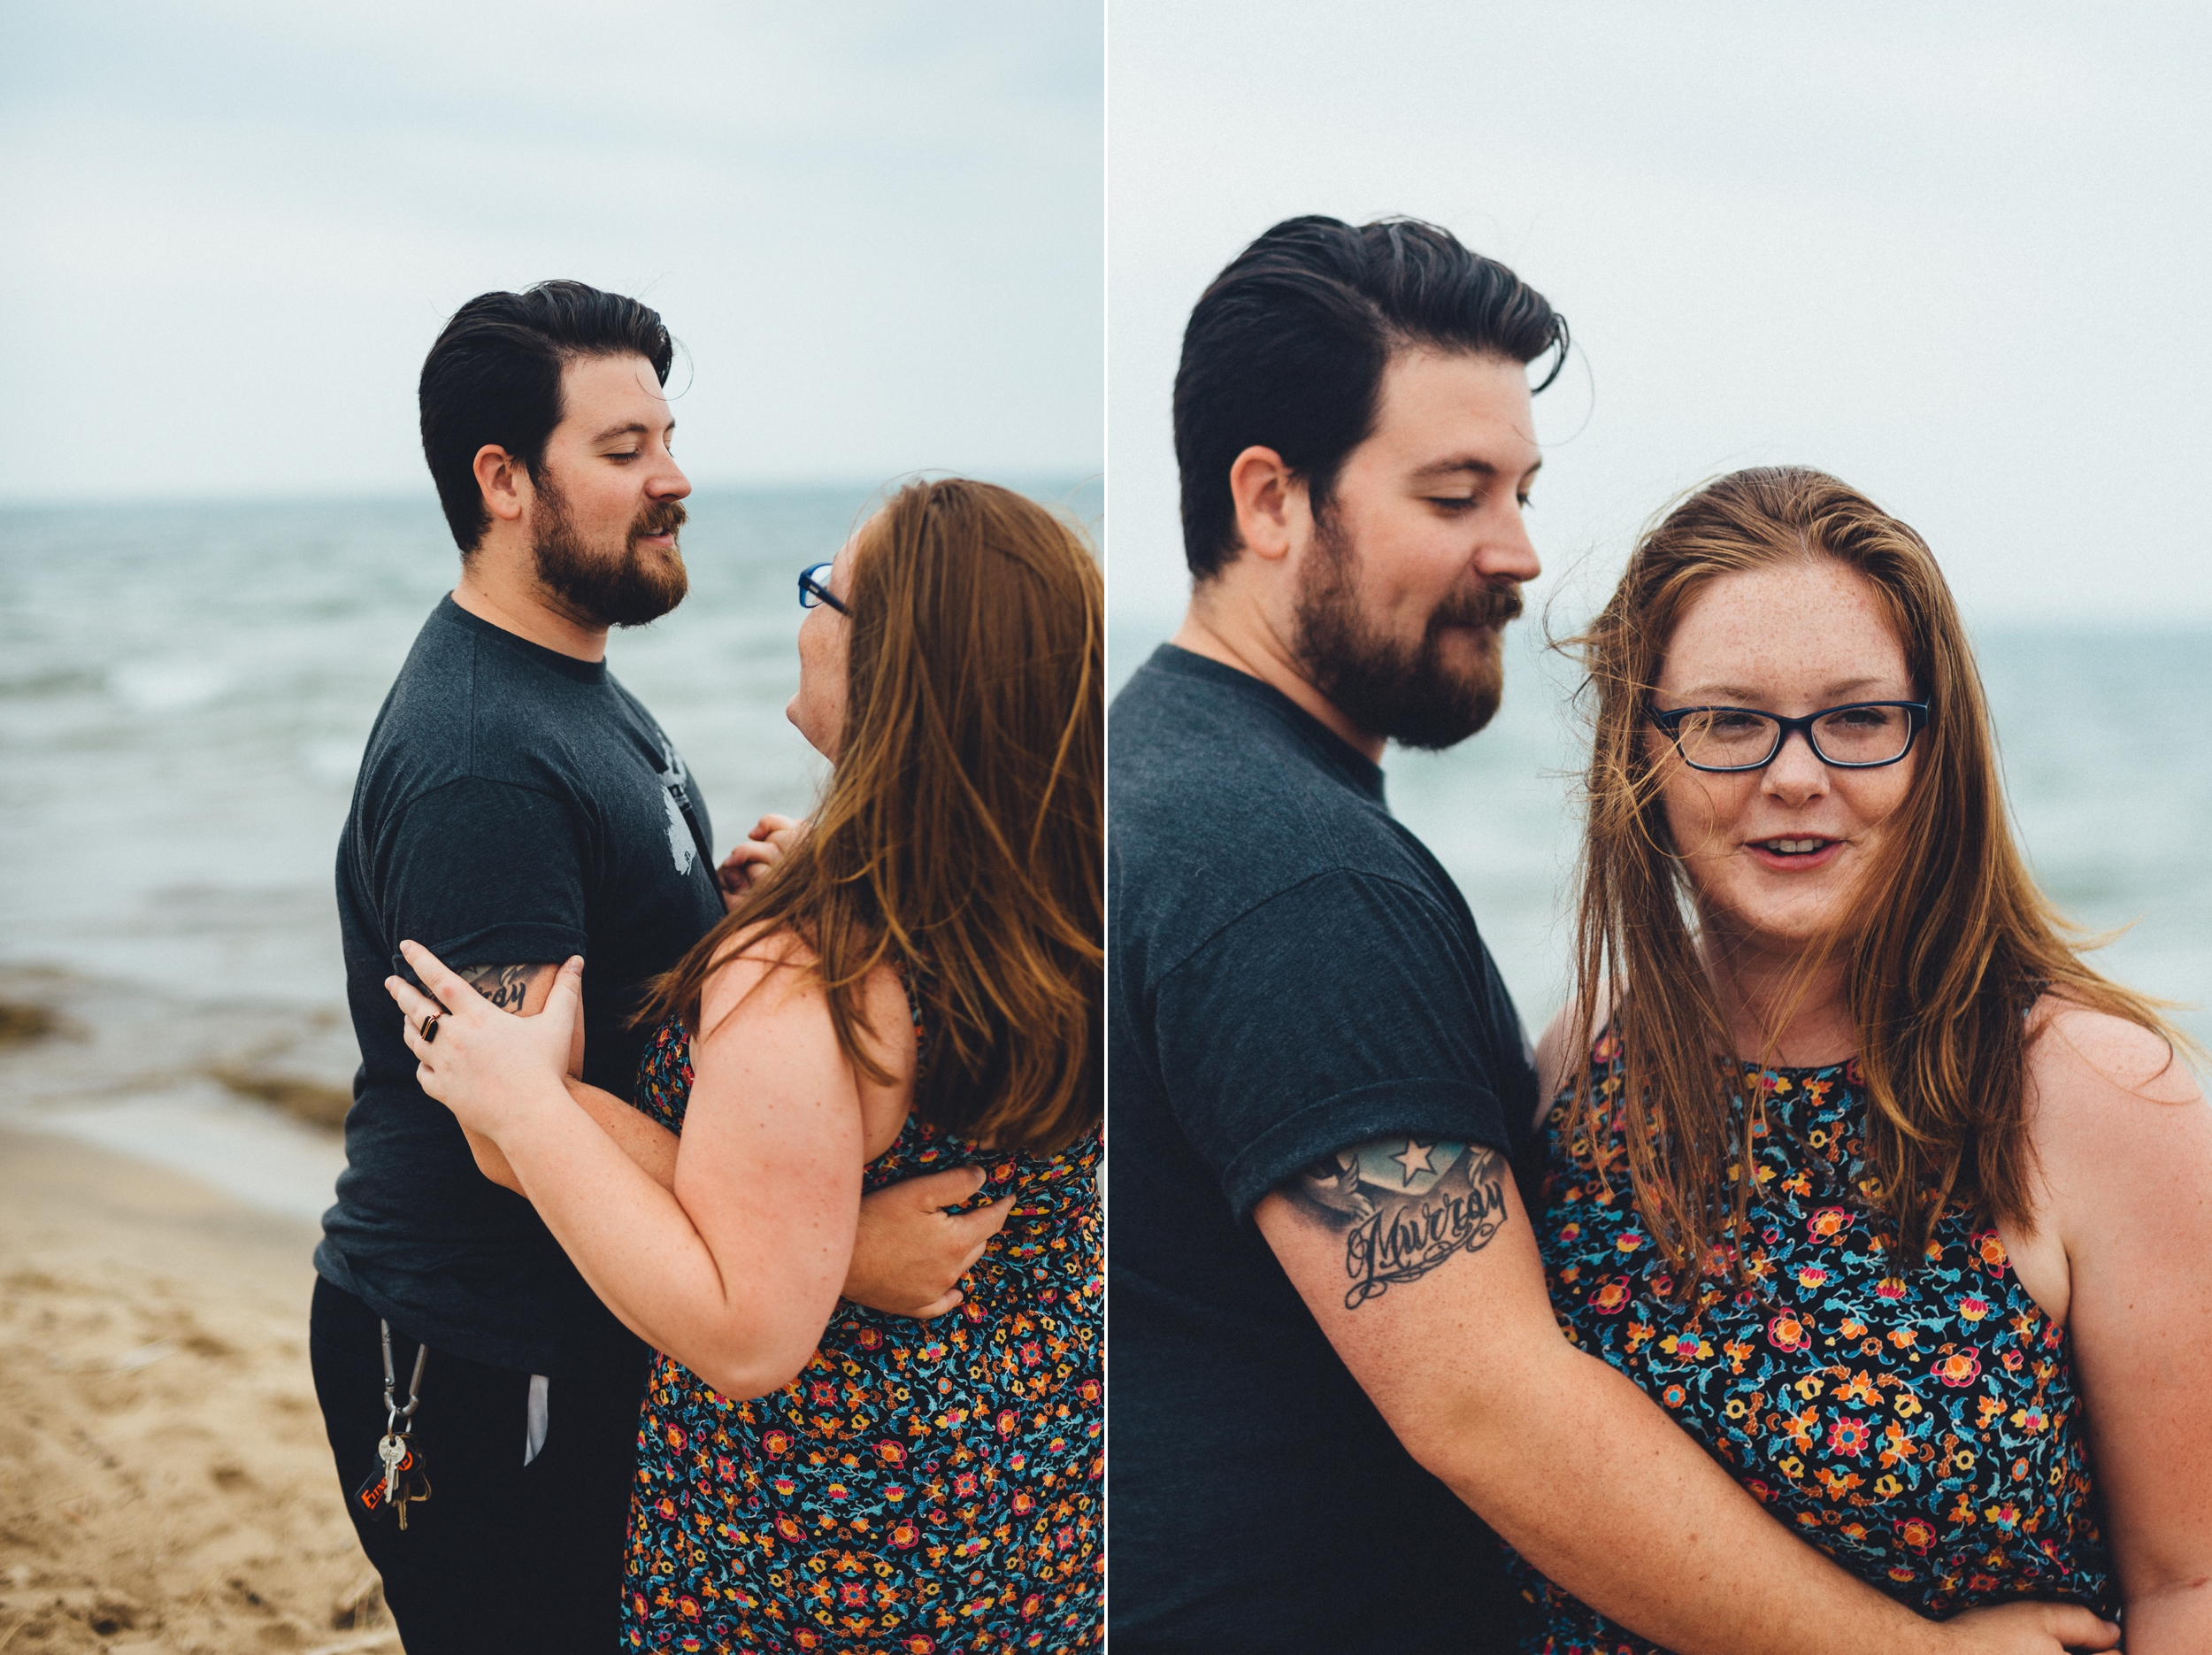 beach_couple_photography_engagment_love_long_island_photographer-Collage 2.jpg